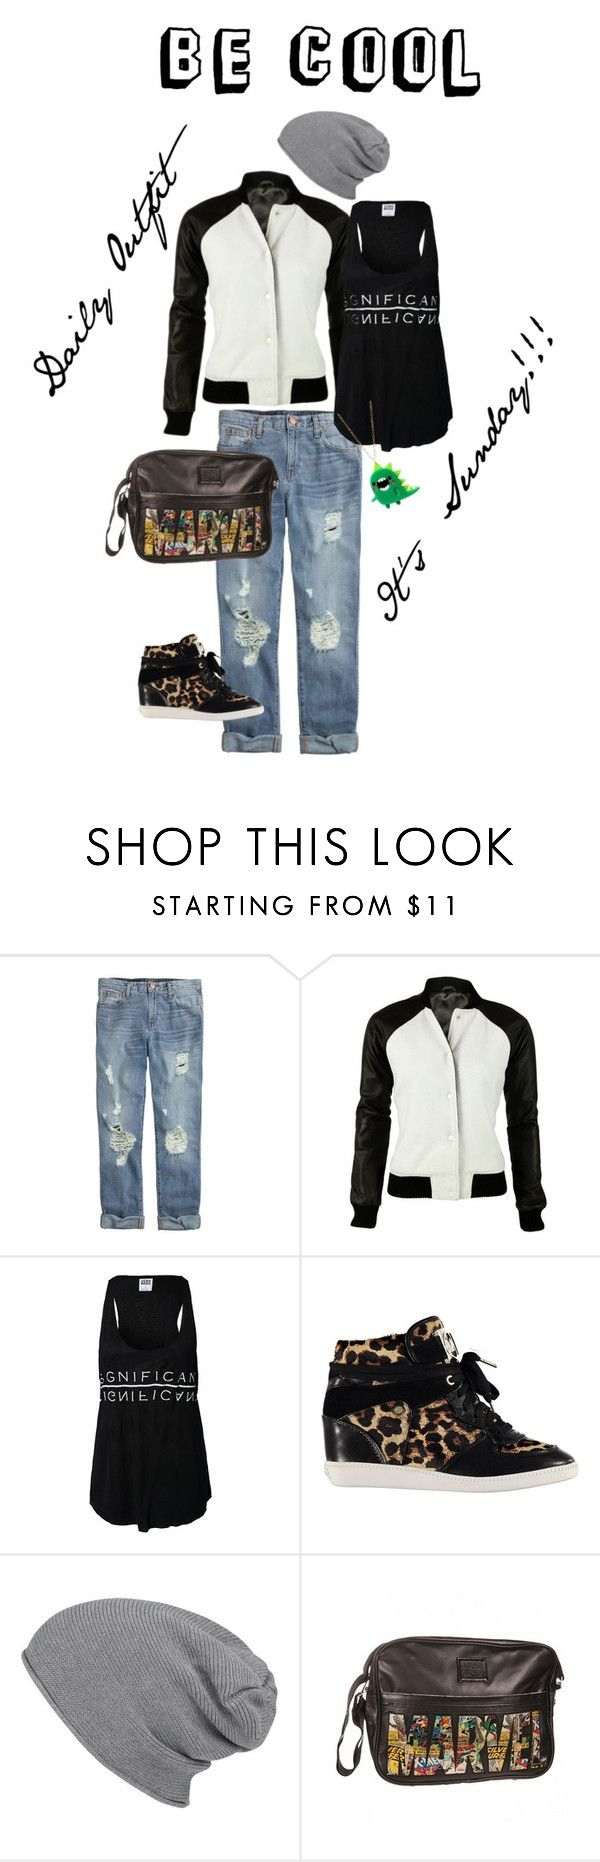 """Sunday Outfit!!"" by stylebycharlene on Polyvore featuring J.Crew, Vero Moda, MICHAEL Michael Kors, Marvel Comics, outfit and fashionset"